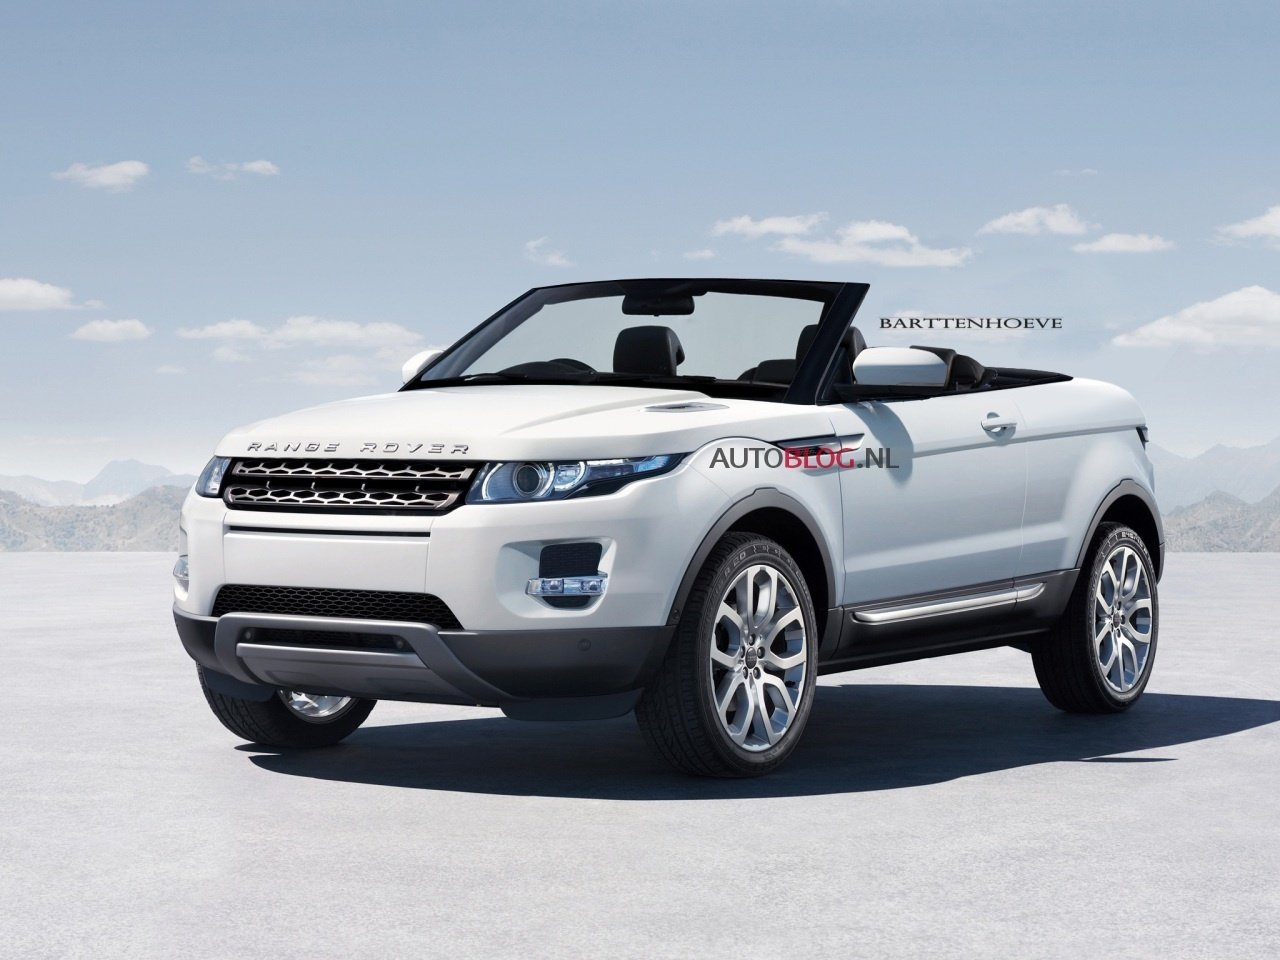 2014 range rover evoque cabrio picture 408664 car review top speed. Black Bedroom Furniture Sets. Home Design Ideas